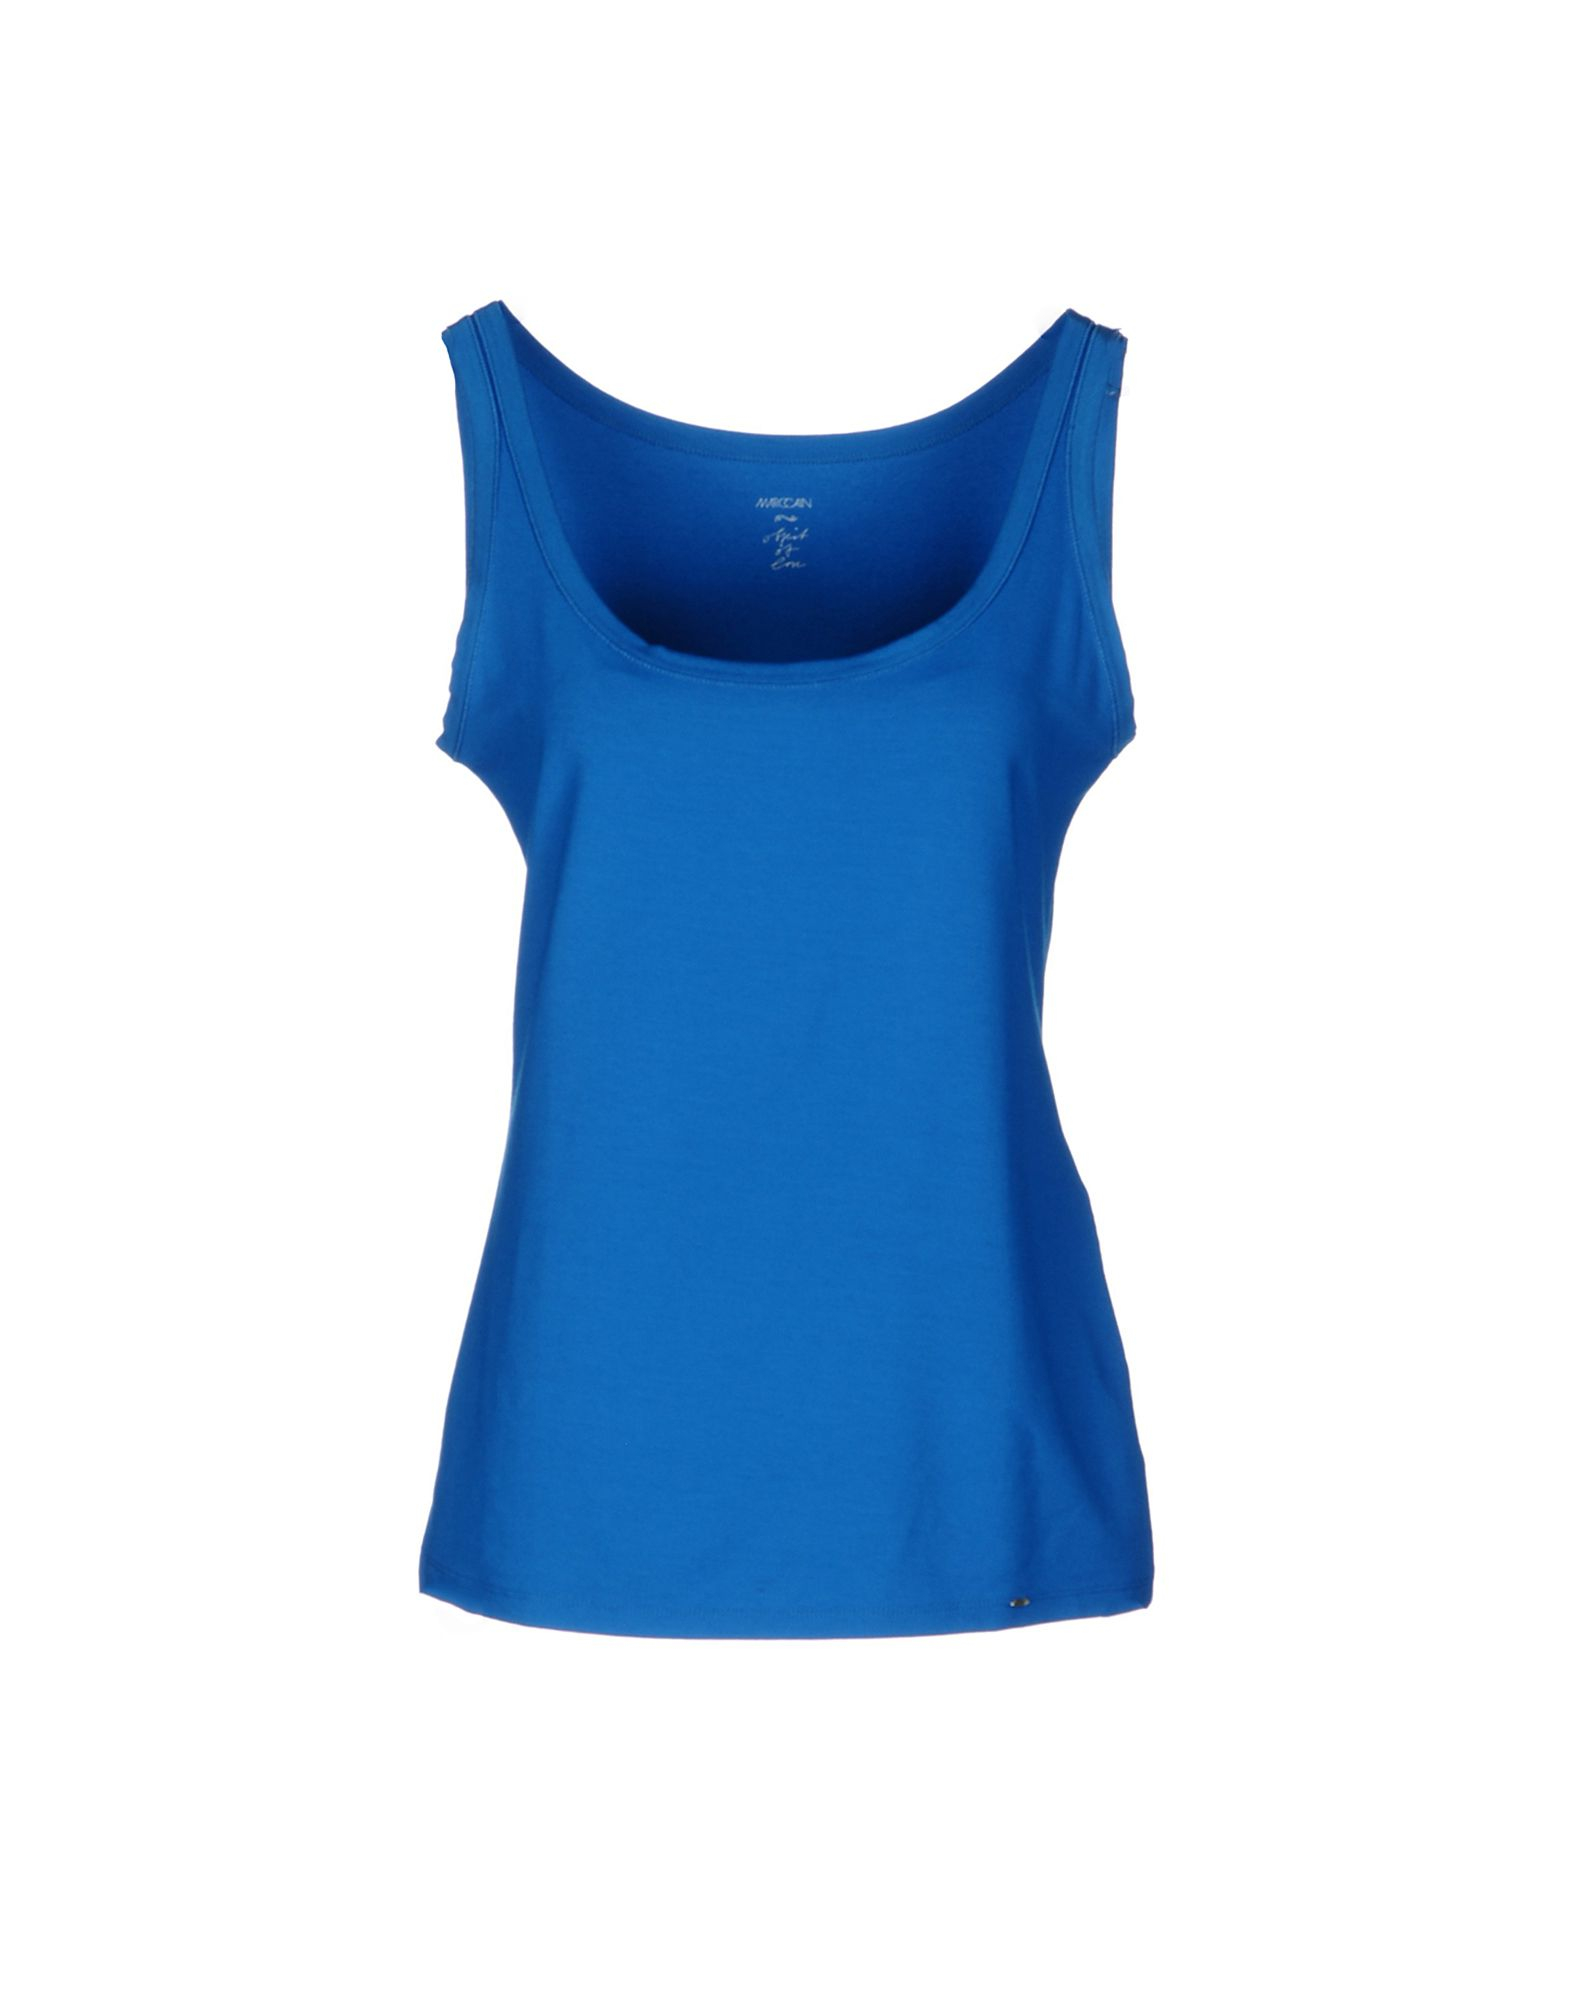 marc cain sleeveless t shirt in blue azure lyst. Black Bedroom Furniture Sets. Home Design Ideas